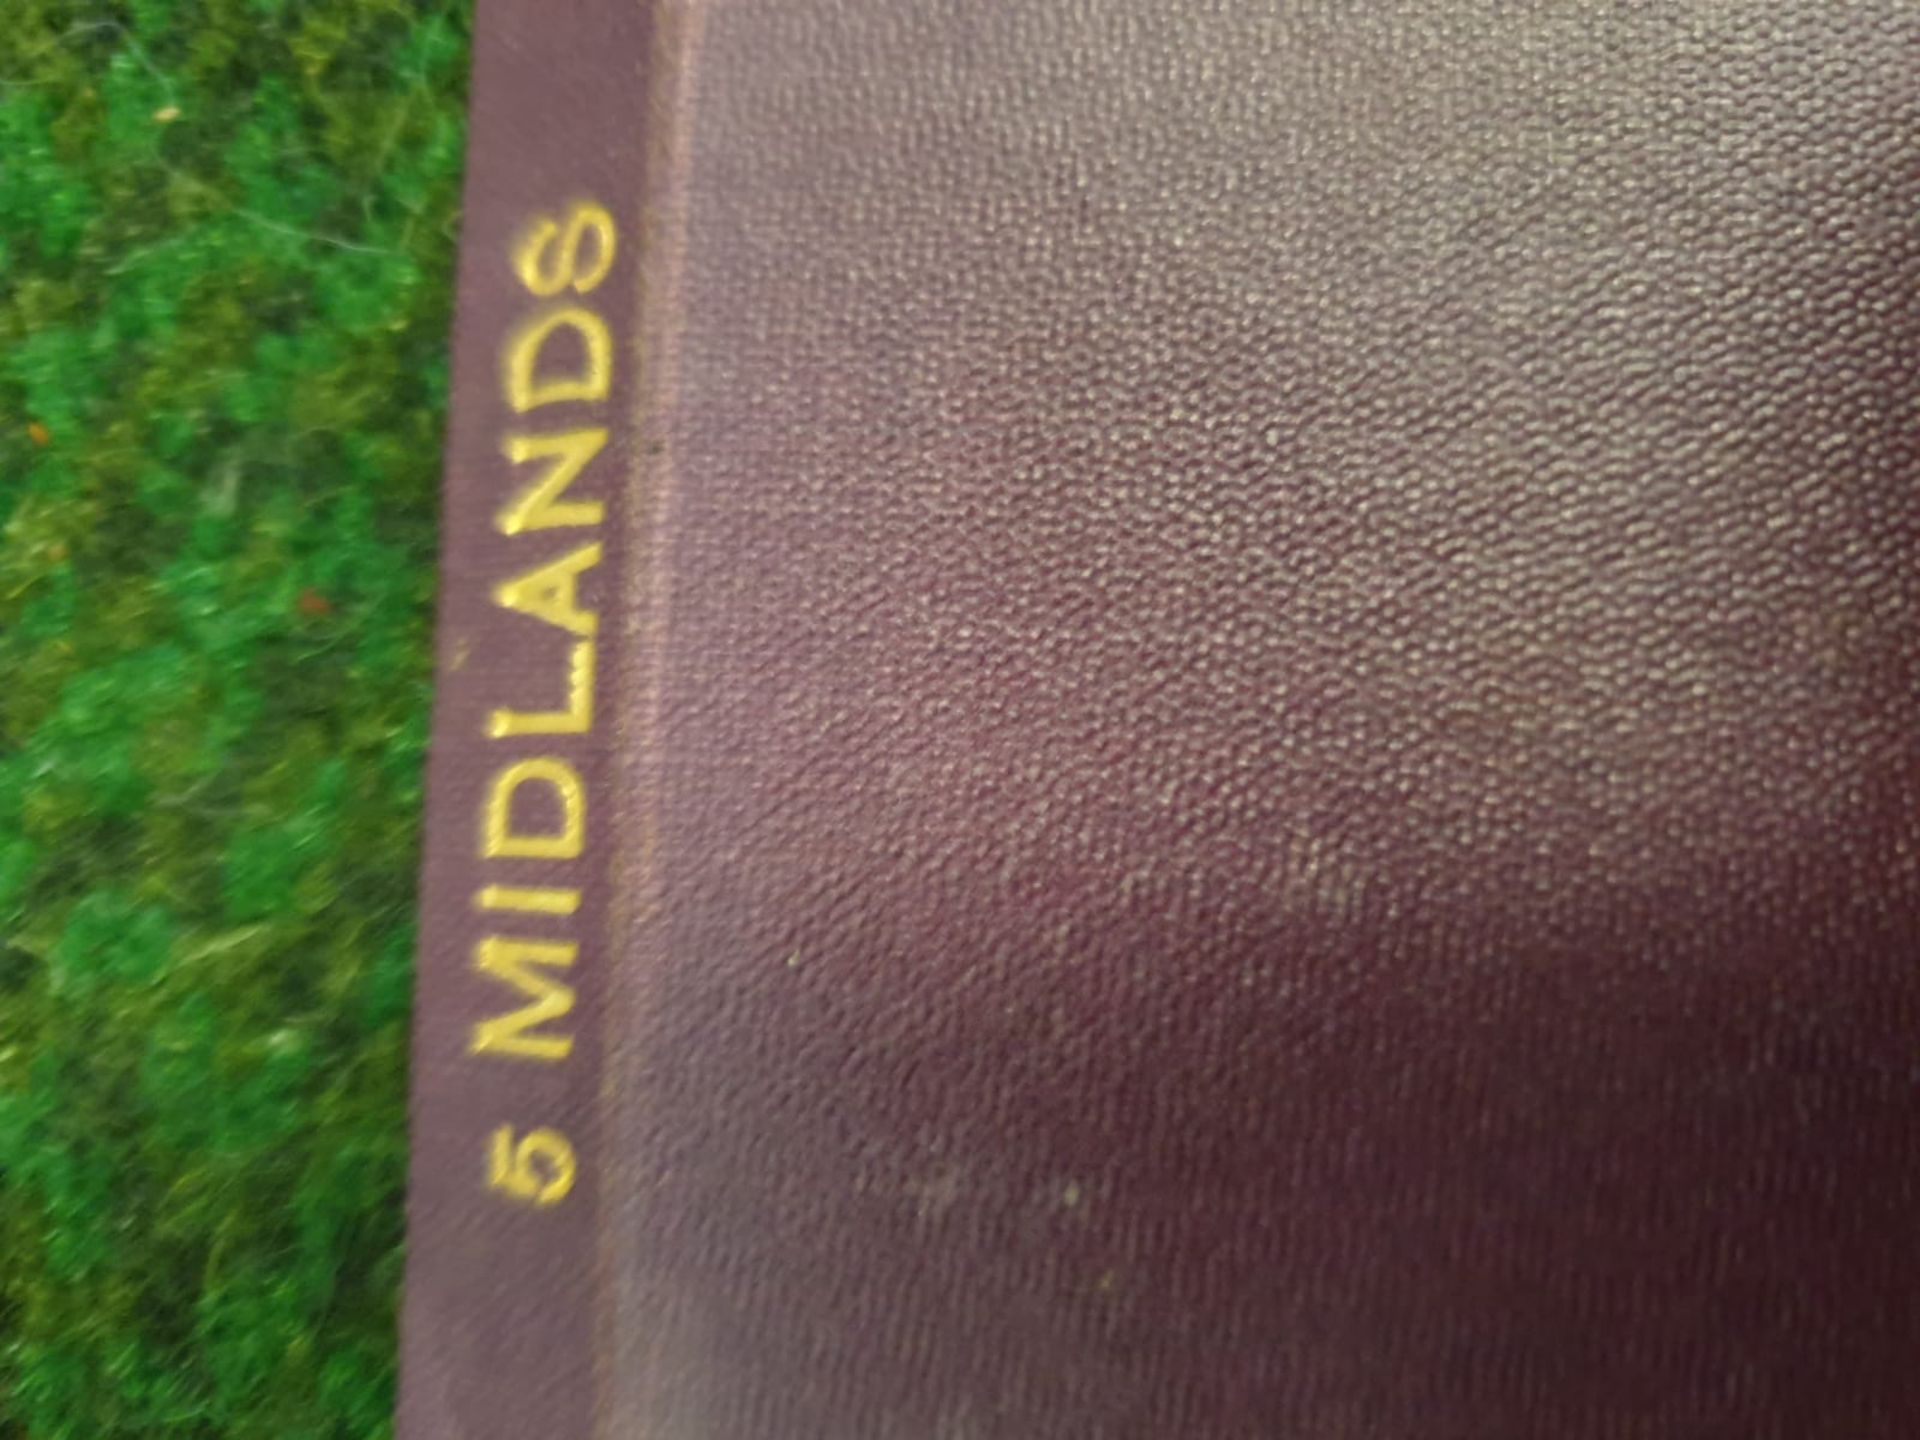 A set of 8 G.W. Bacon & Co VintageLarge Print Road maps in leather slipcase Circa. 1910 - Image 3 of 12